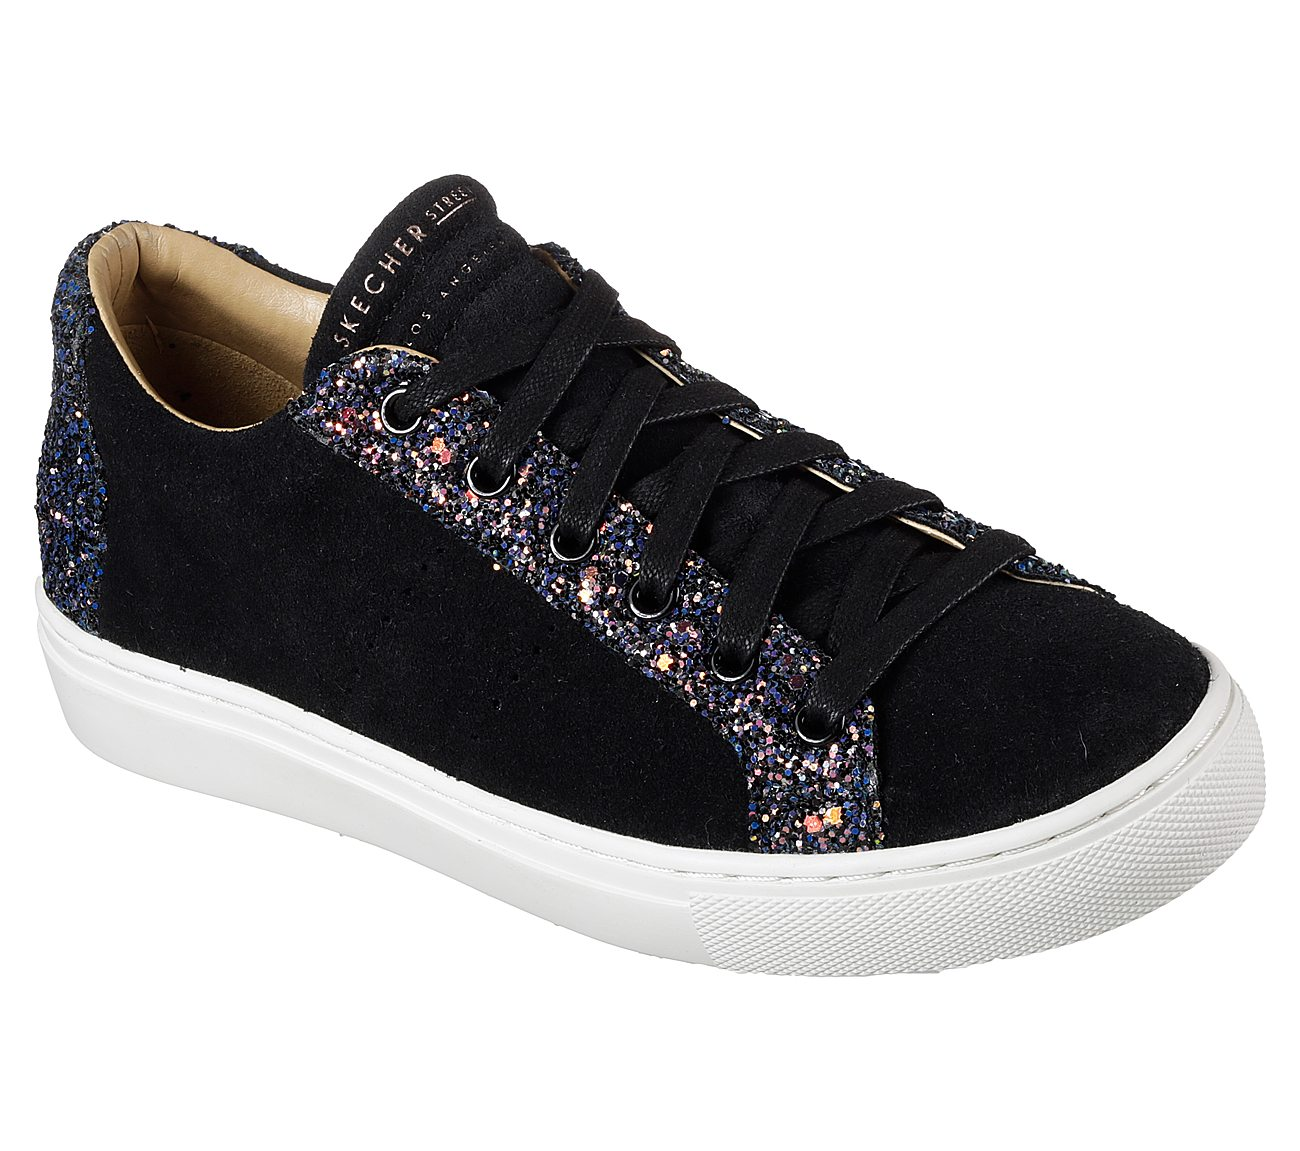 Skechers Street Women/'s Side Street-COMET KICKERS 73544 Black Brand New